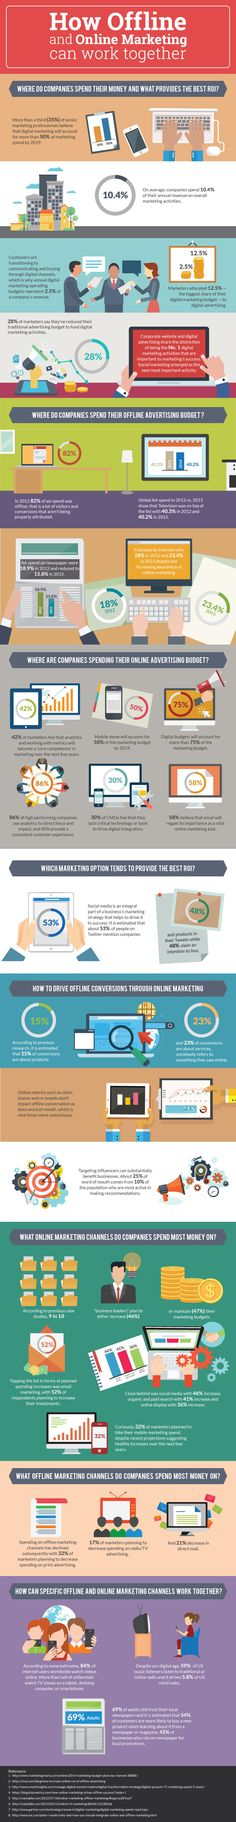 Online vs Offline Marketing: Stats That Show Where to Spend Your Budget [Infographic]